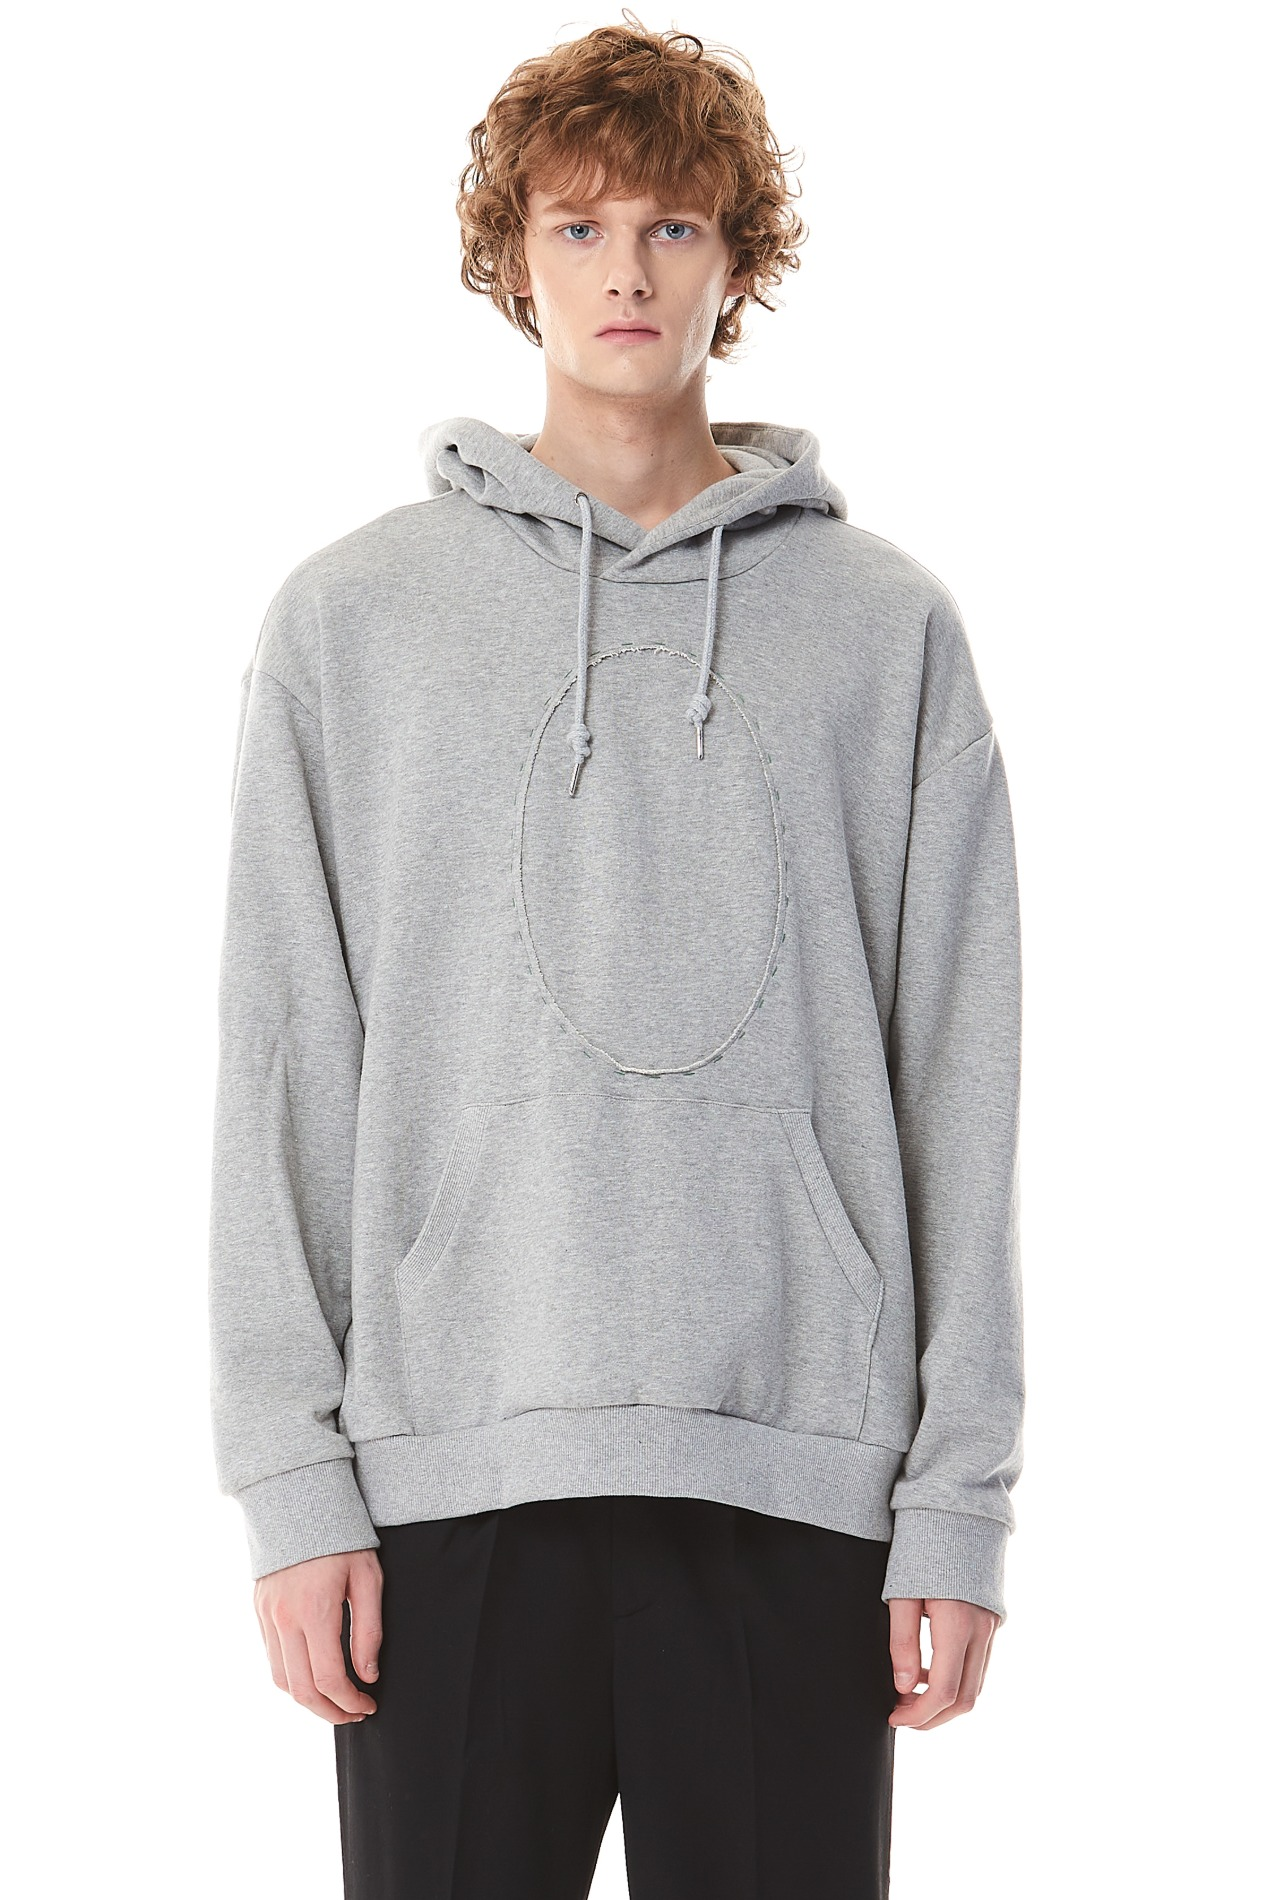 CircleCropped Hand Stitch Hoodie(Gray)